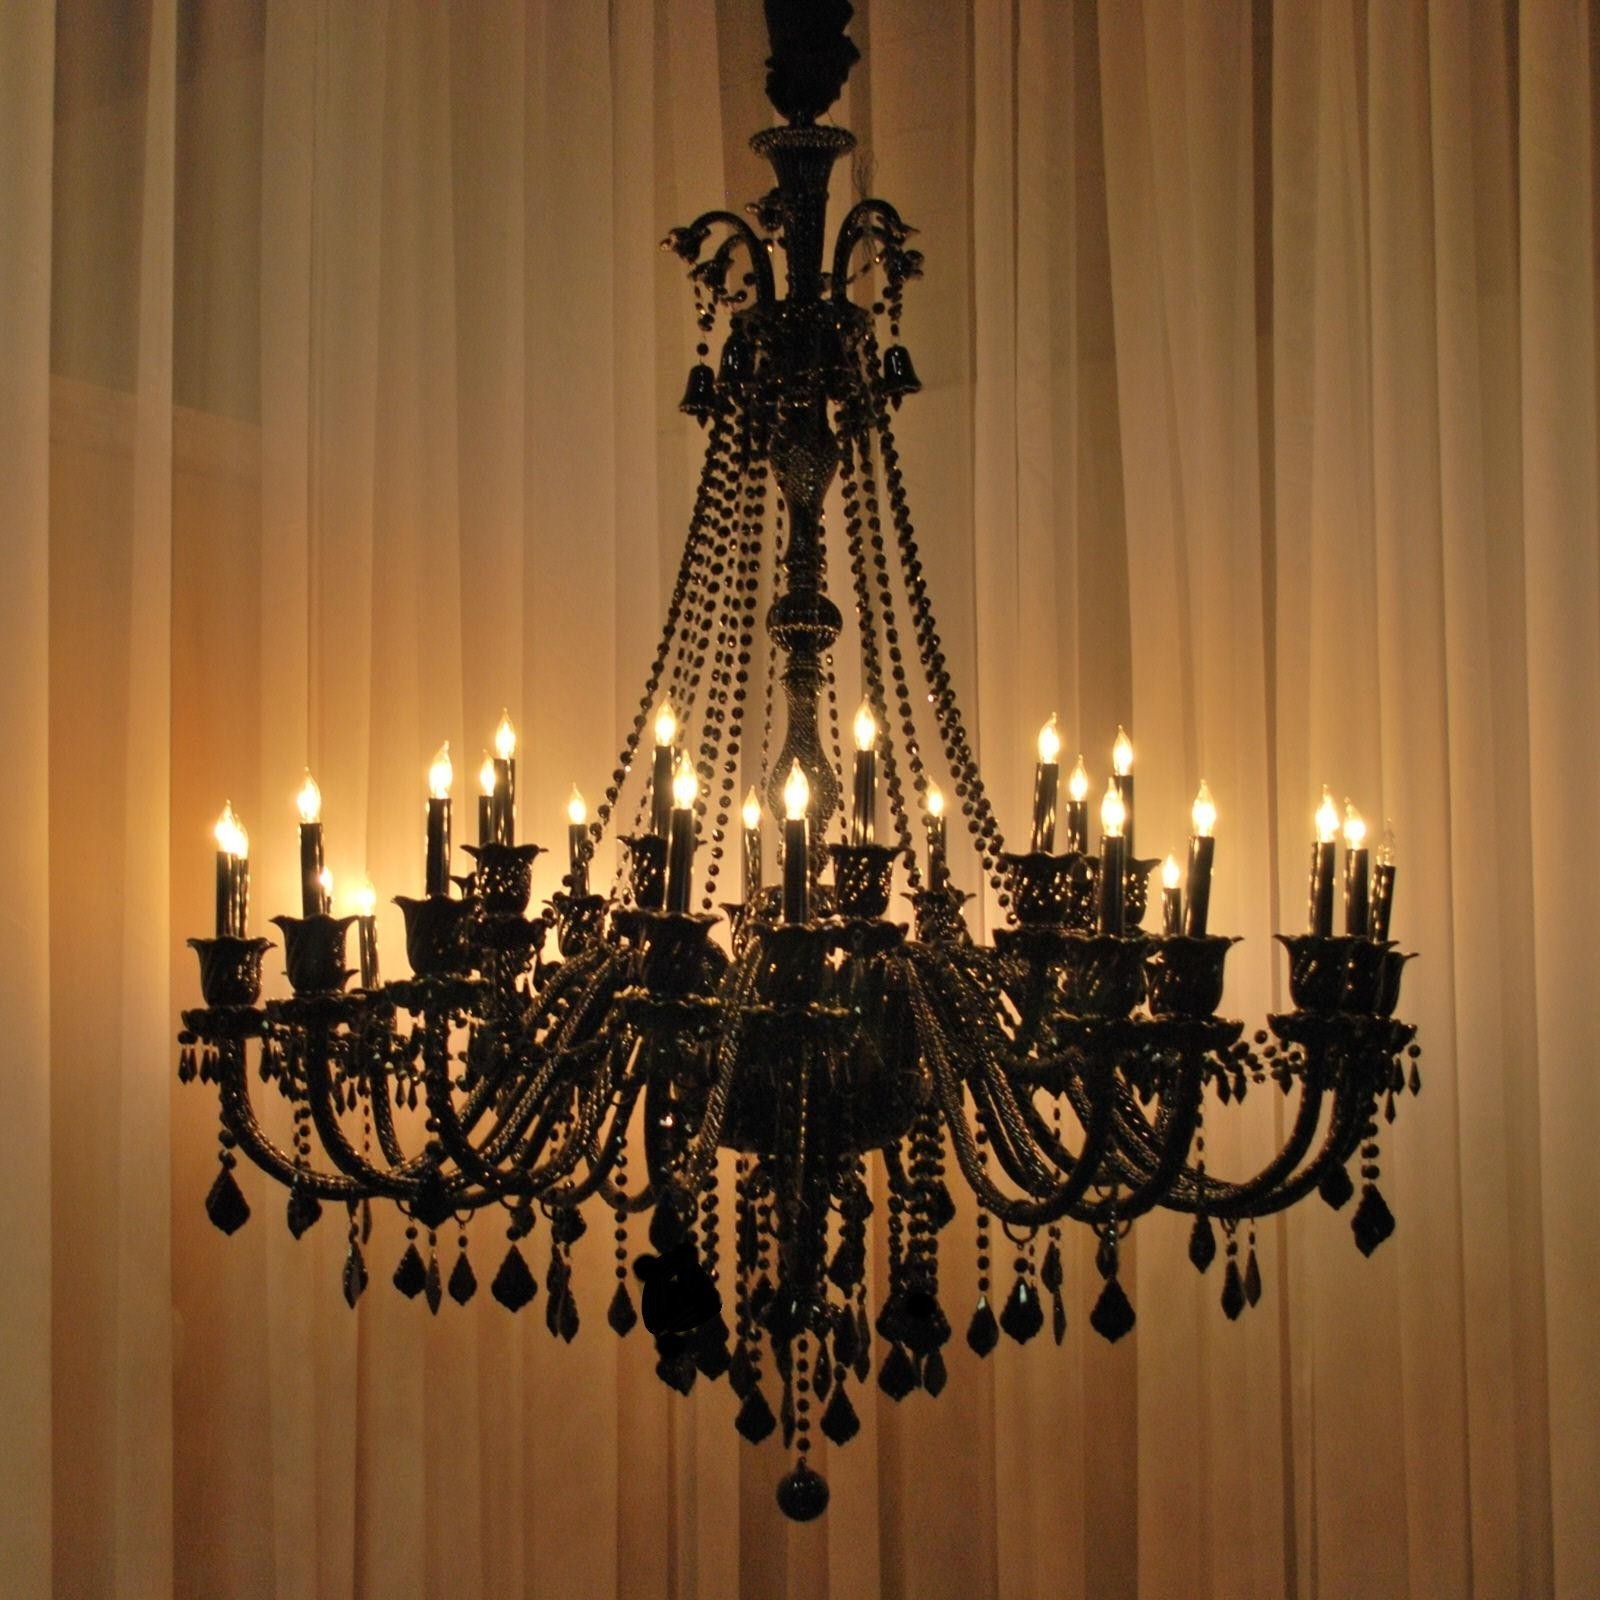 Big Chandeliers : Lamp World In Most Popular Big Chandeliers (View 2 of 20)